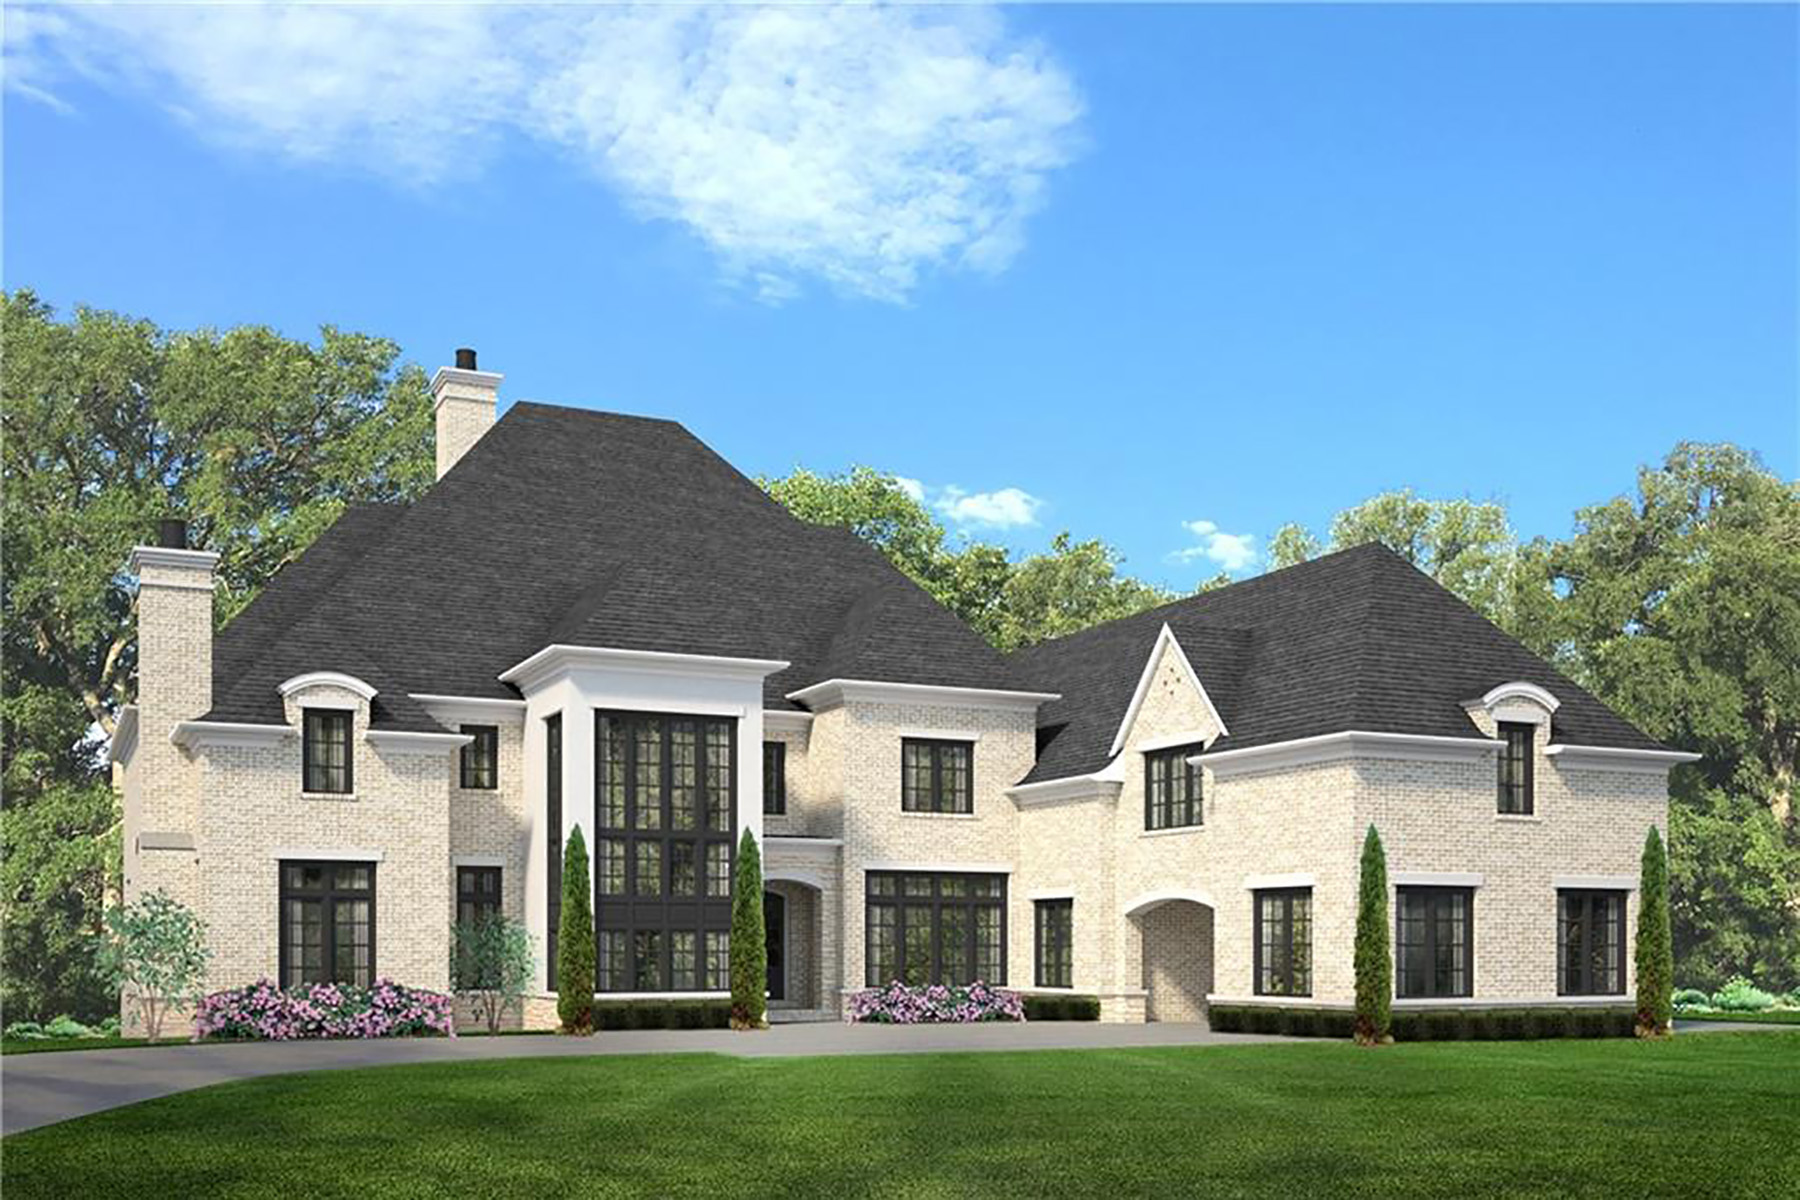 Single Family Homes for Sale at Extraordinary New Construction in the Heart of Buckhead 4520 Northside Drive Atlanta, Georgia 30327 United States